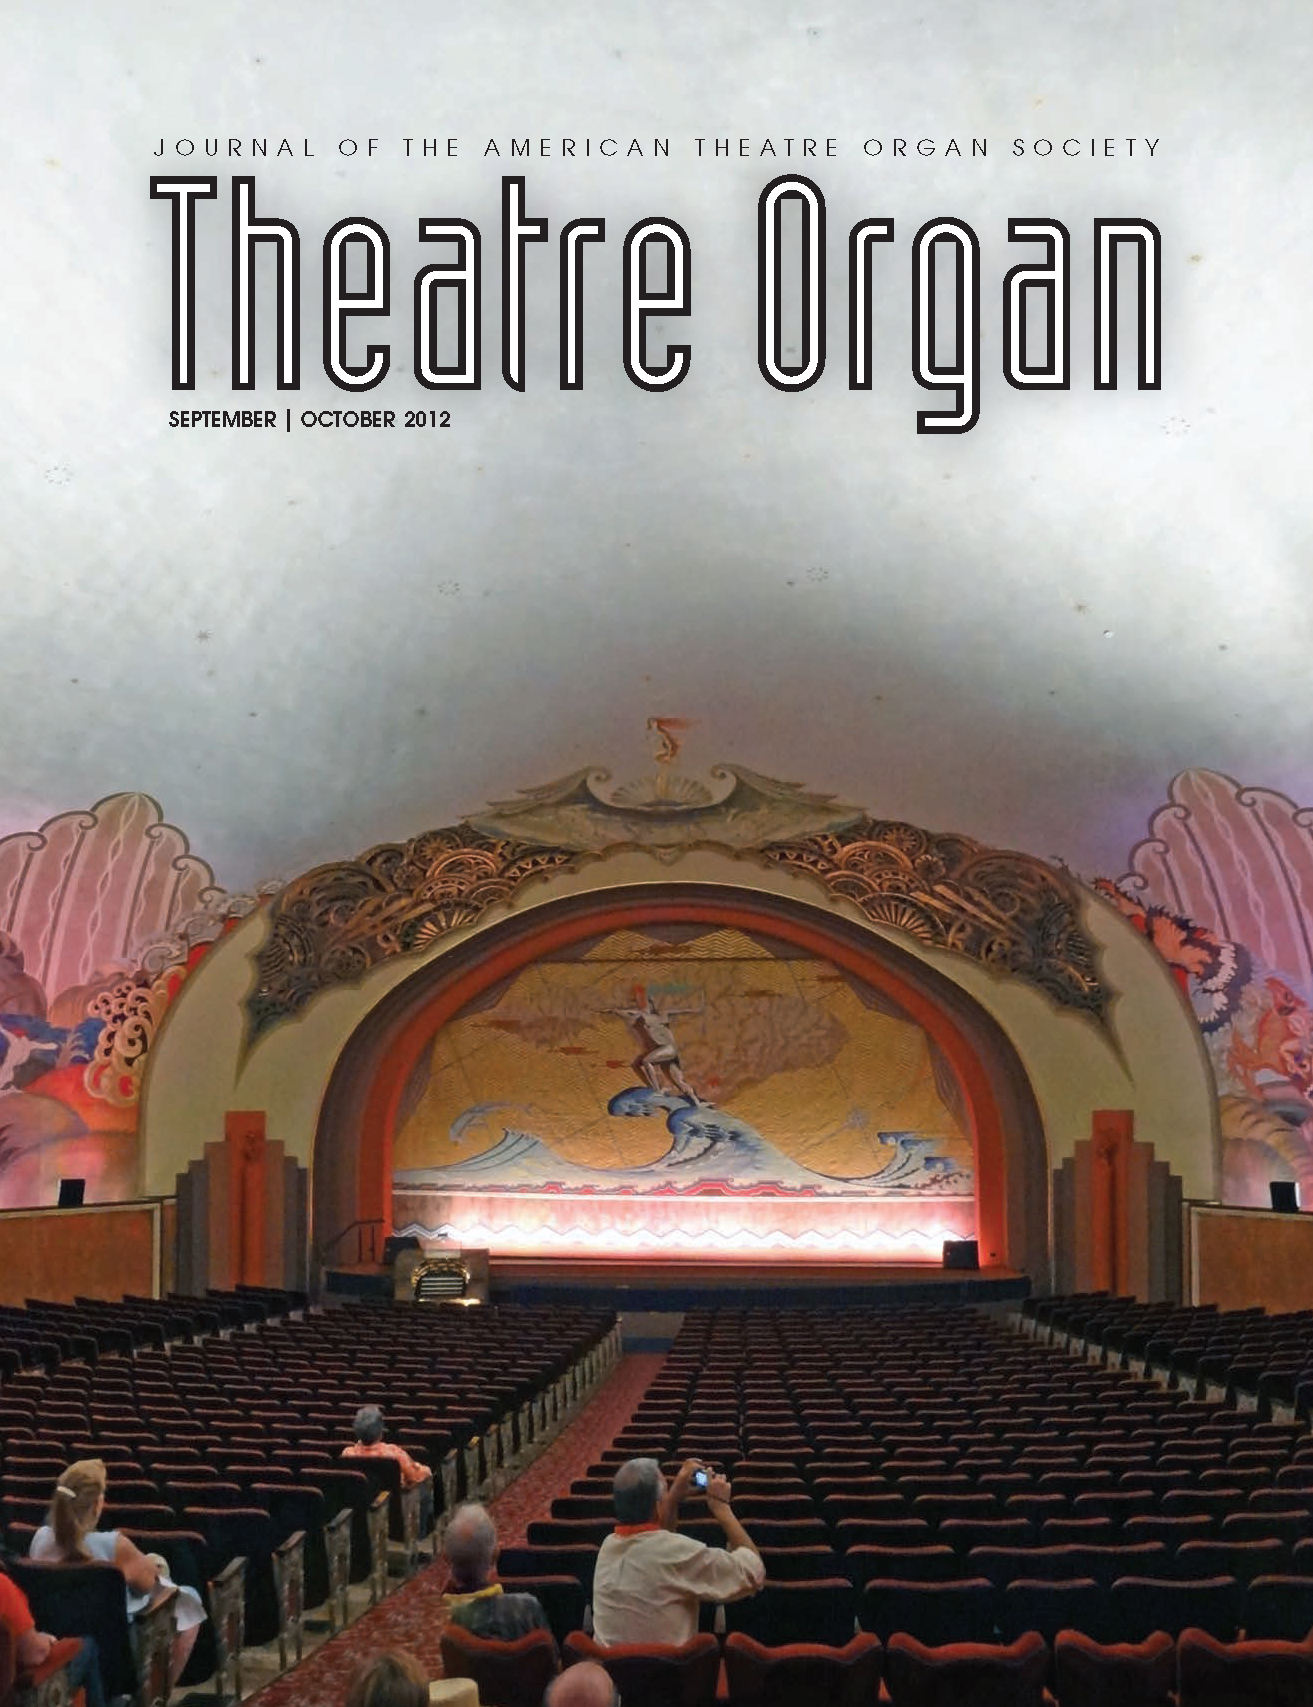 Theatre Organ, September - October 2012, Volume 54, Number 5